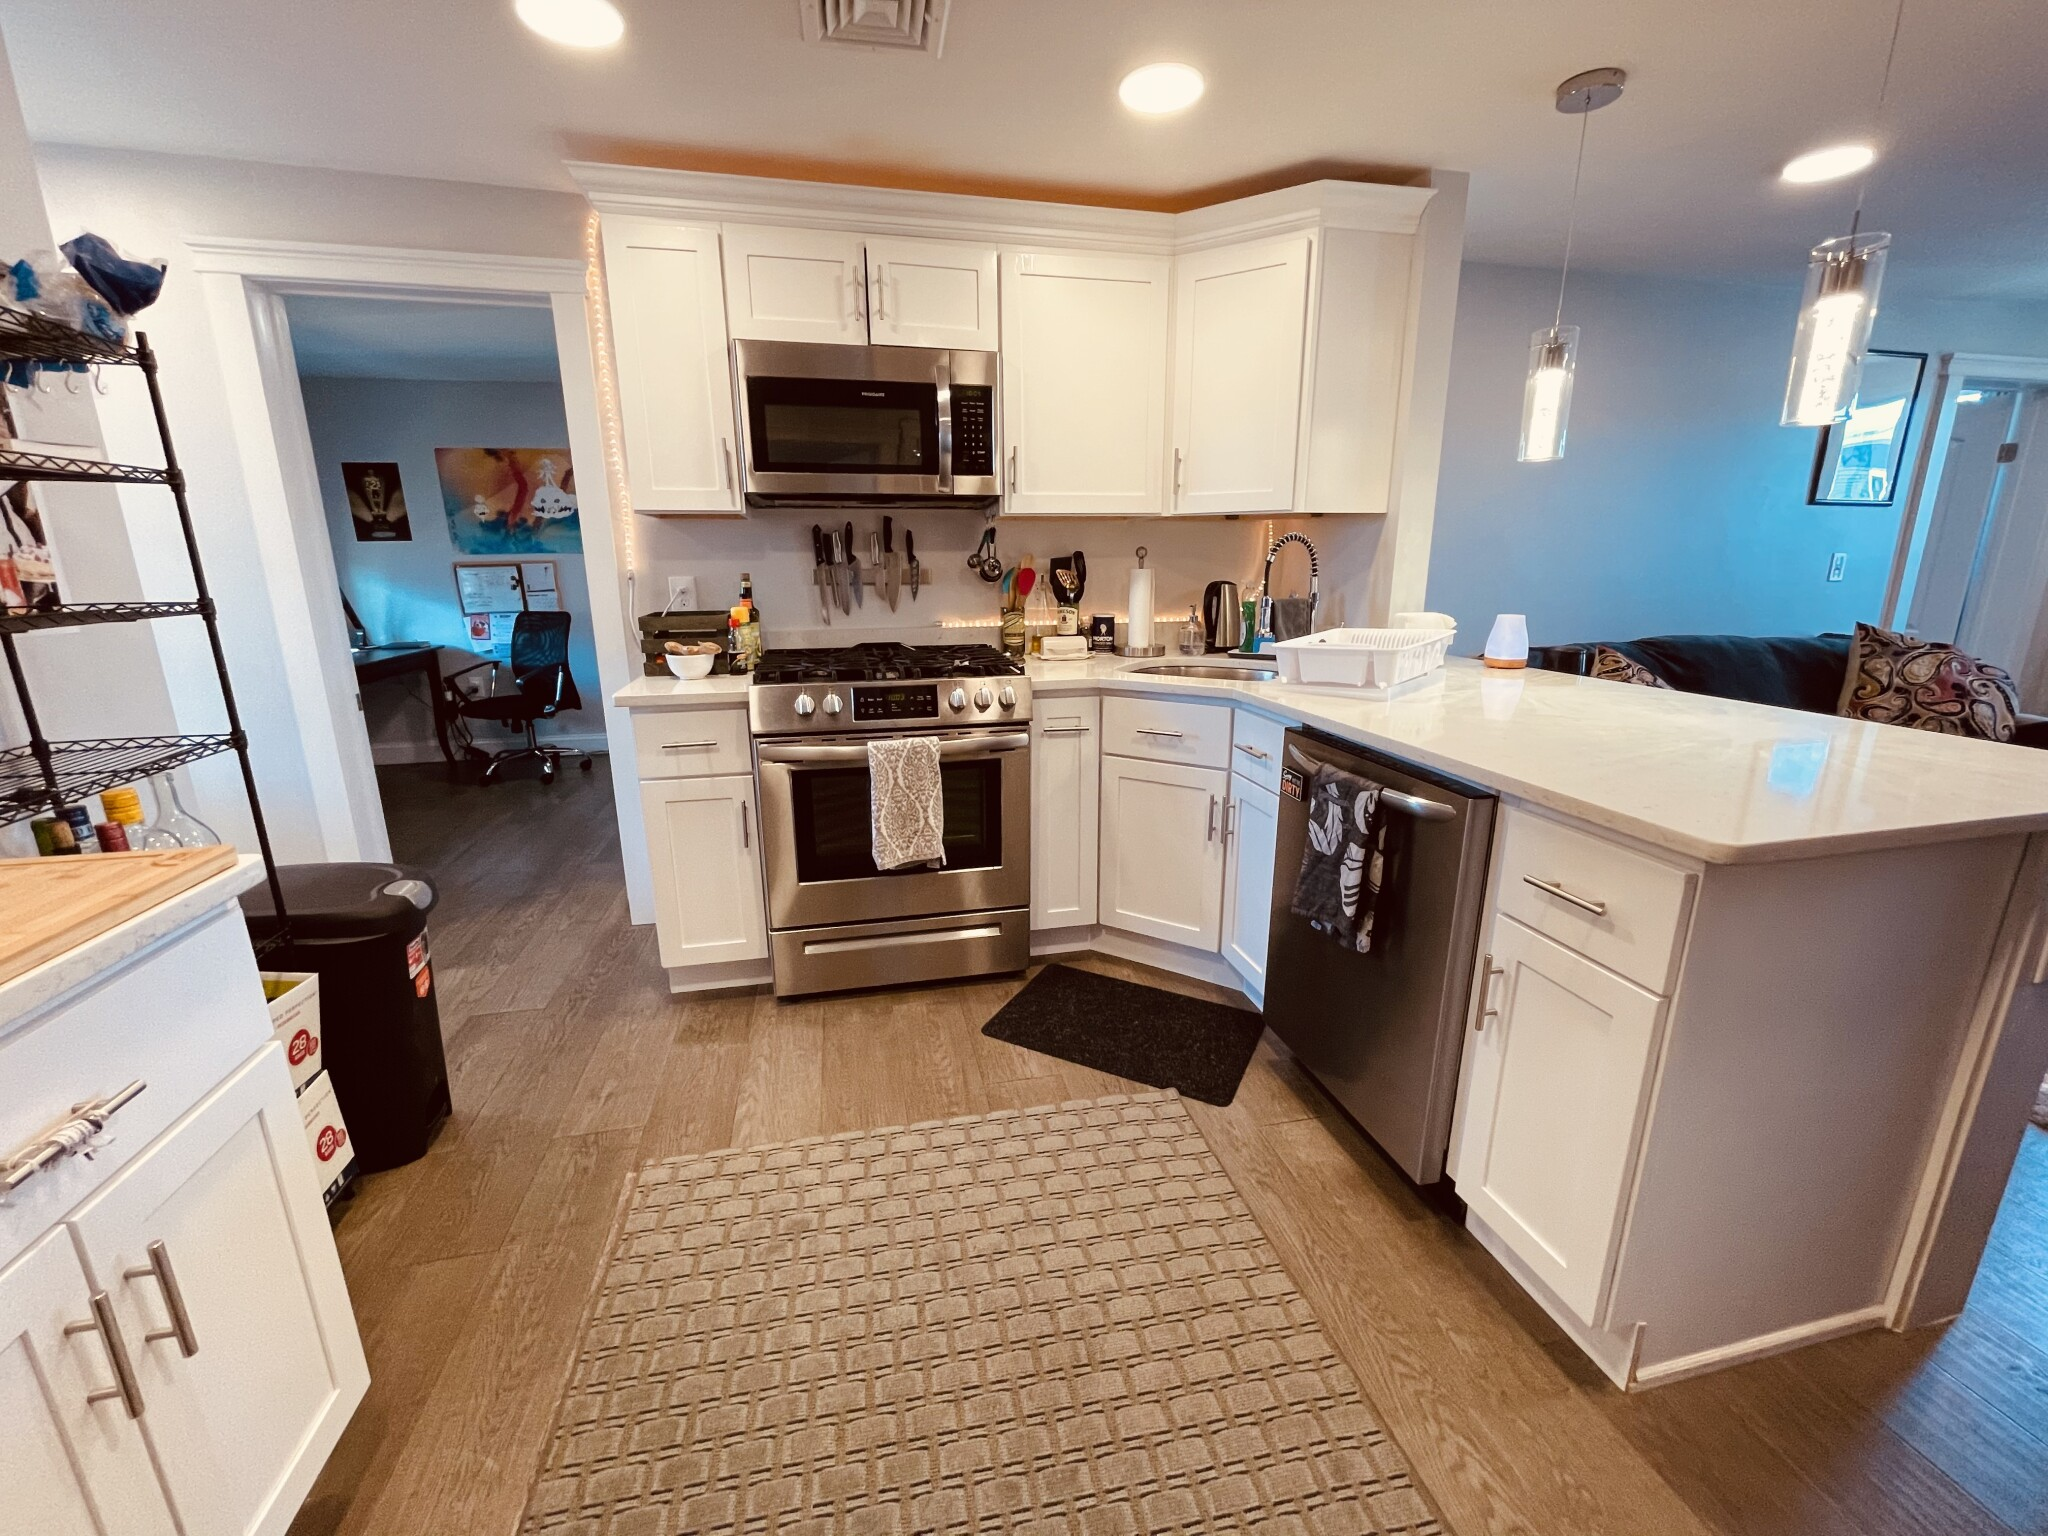 4 Beds, 1 Bath apartment in Boston, East Boston for $2,800